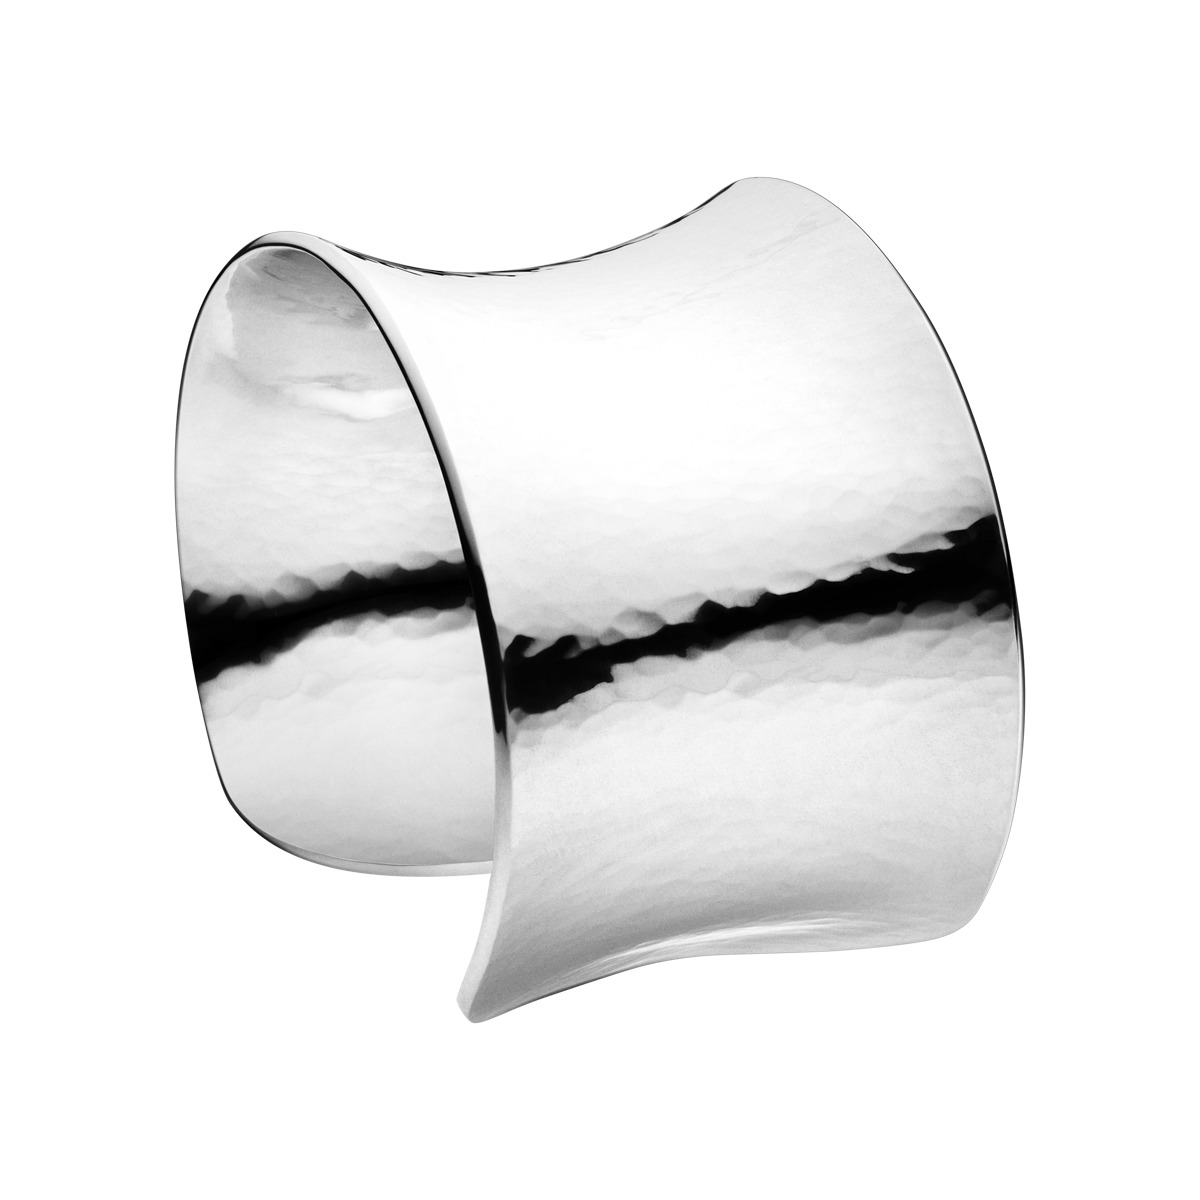 Image of   Georg Jensen SMITHY CUFFS armring - 3531149 Armring størrelse S